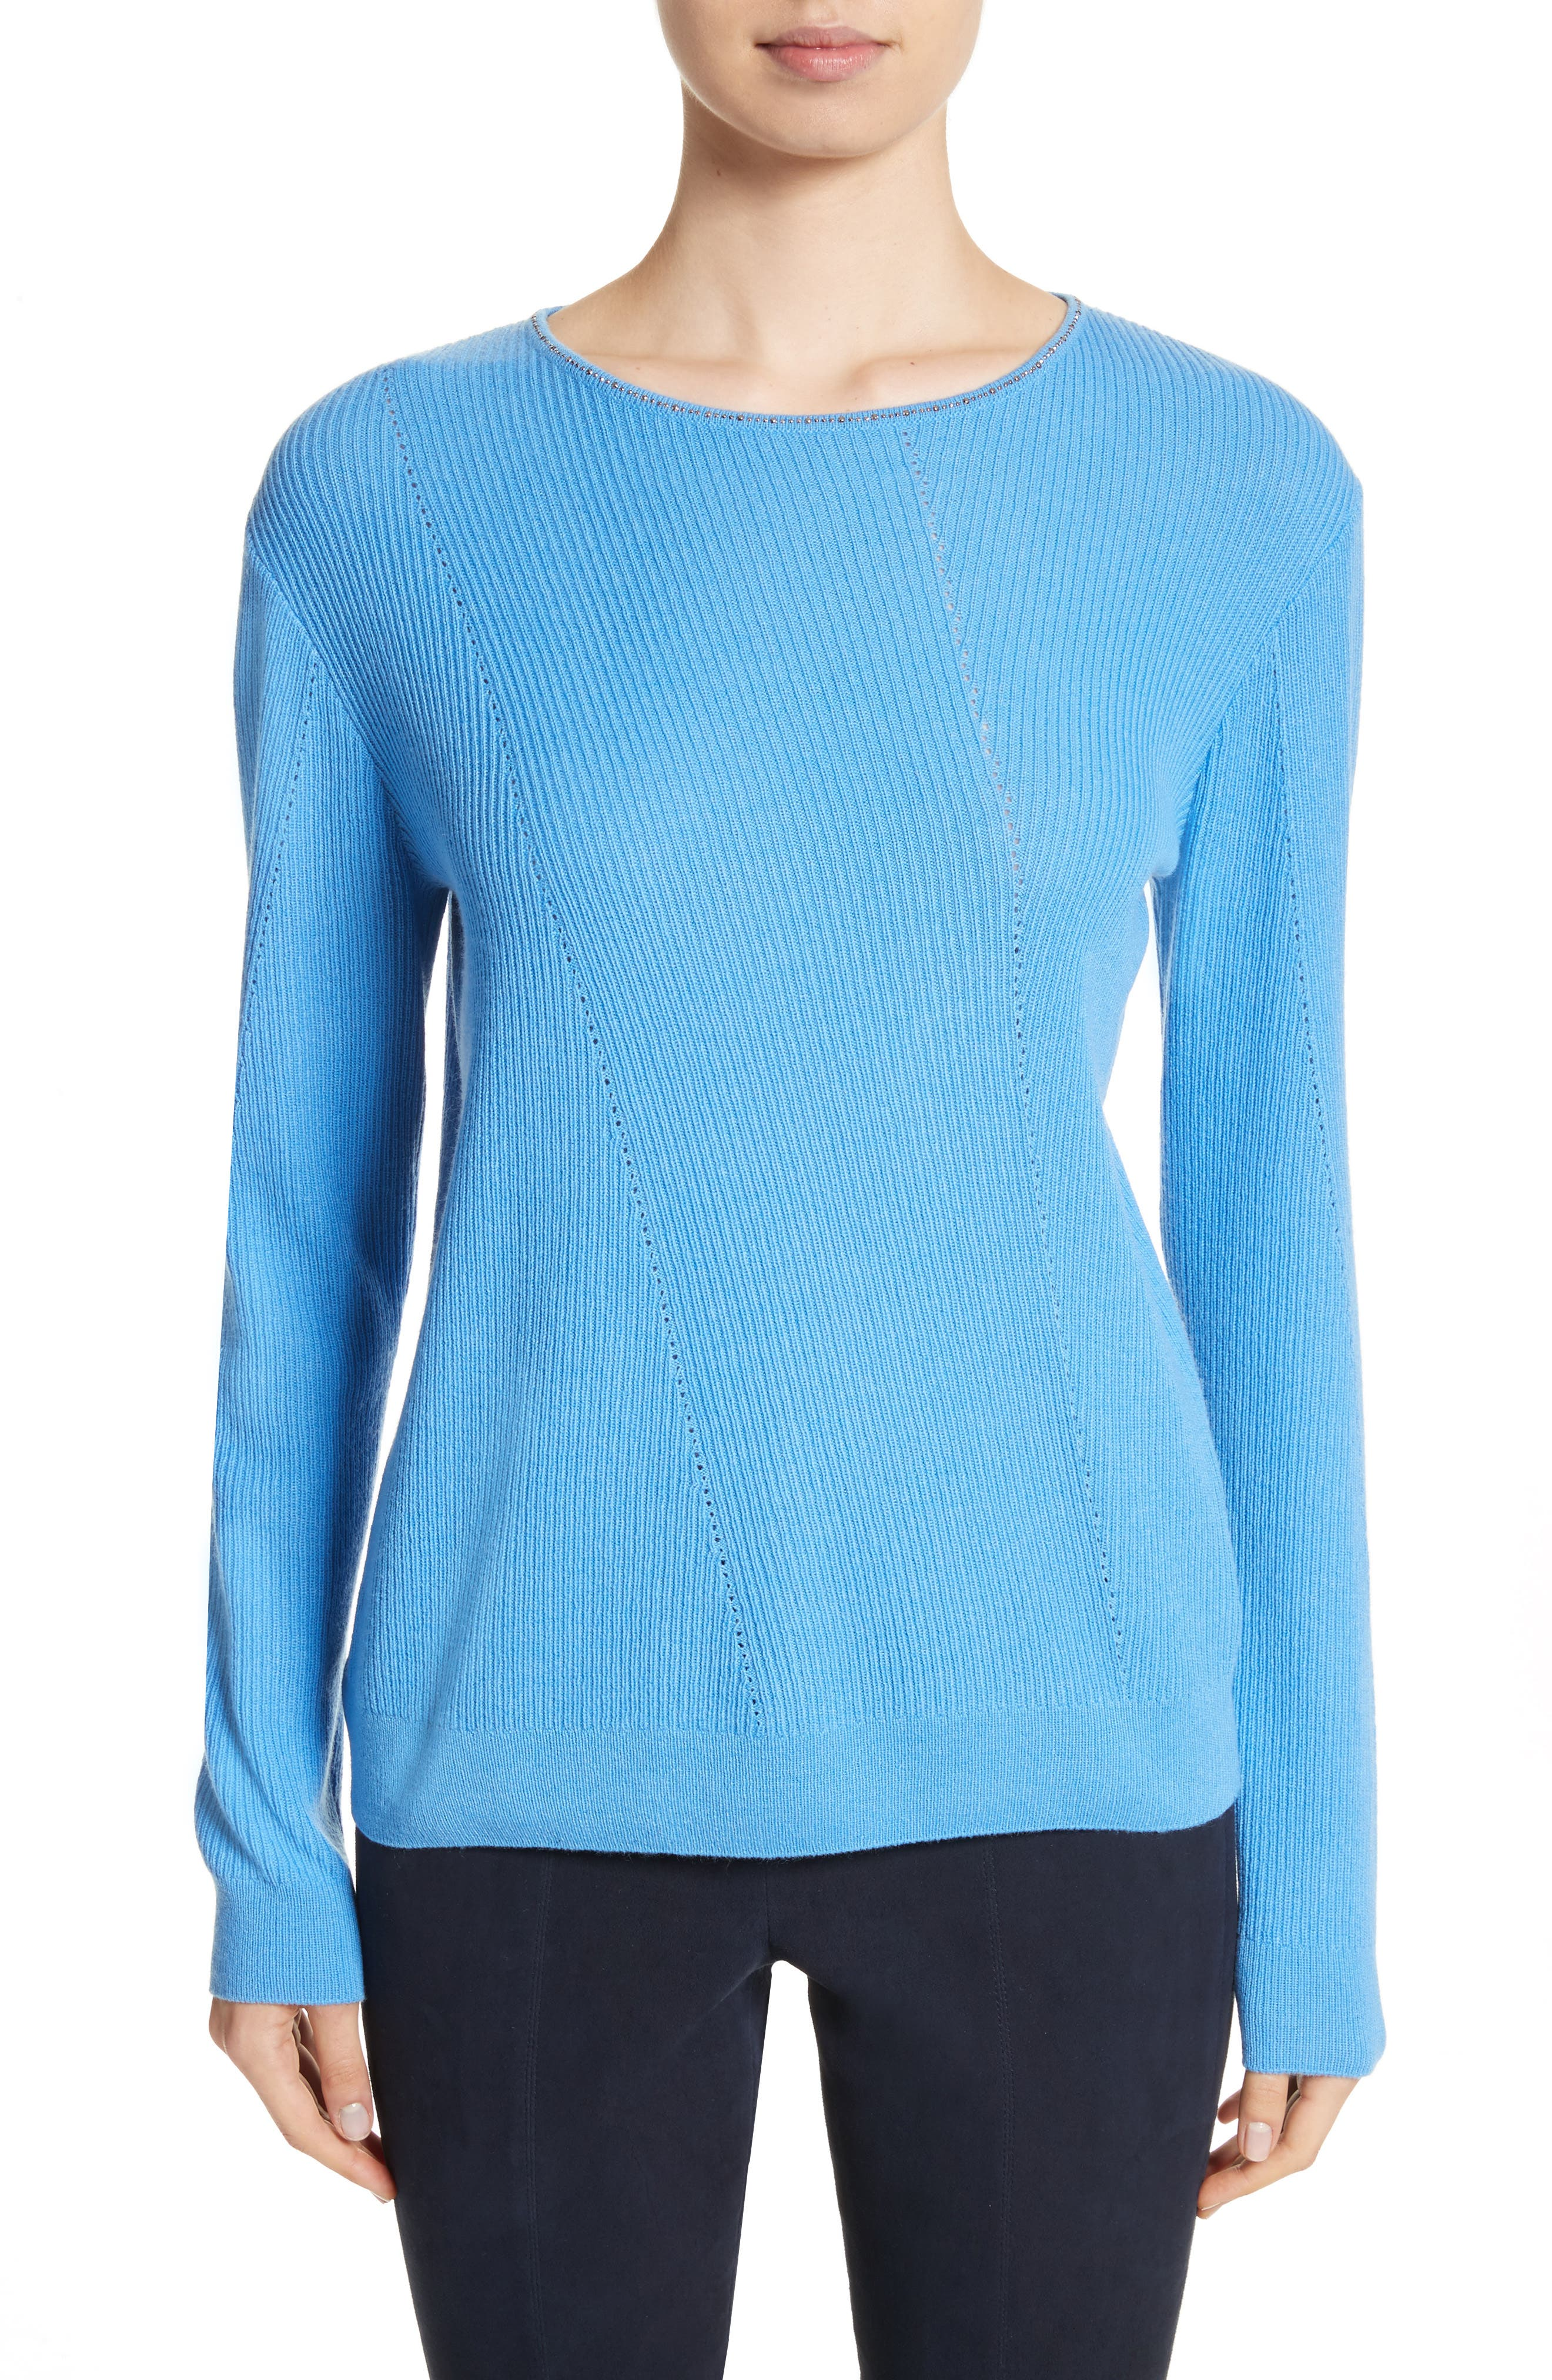 Alternate Image 1 Selected - St. John Collection Cashmere Sweater